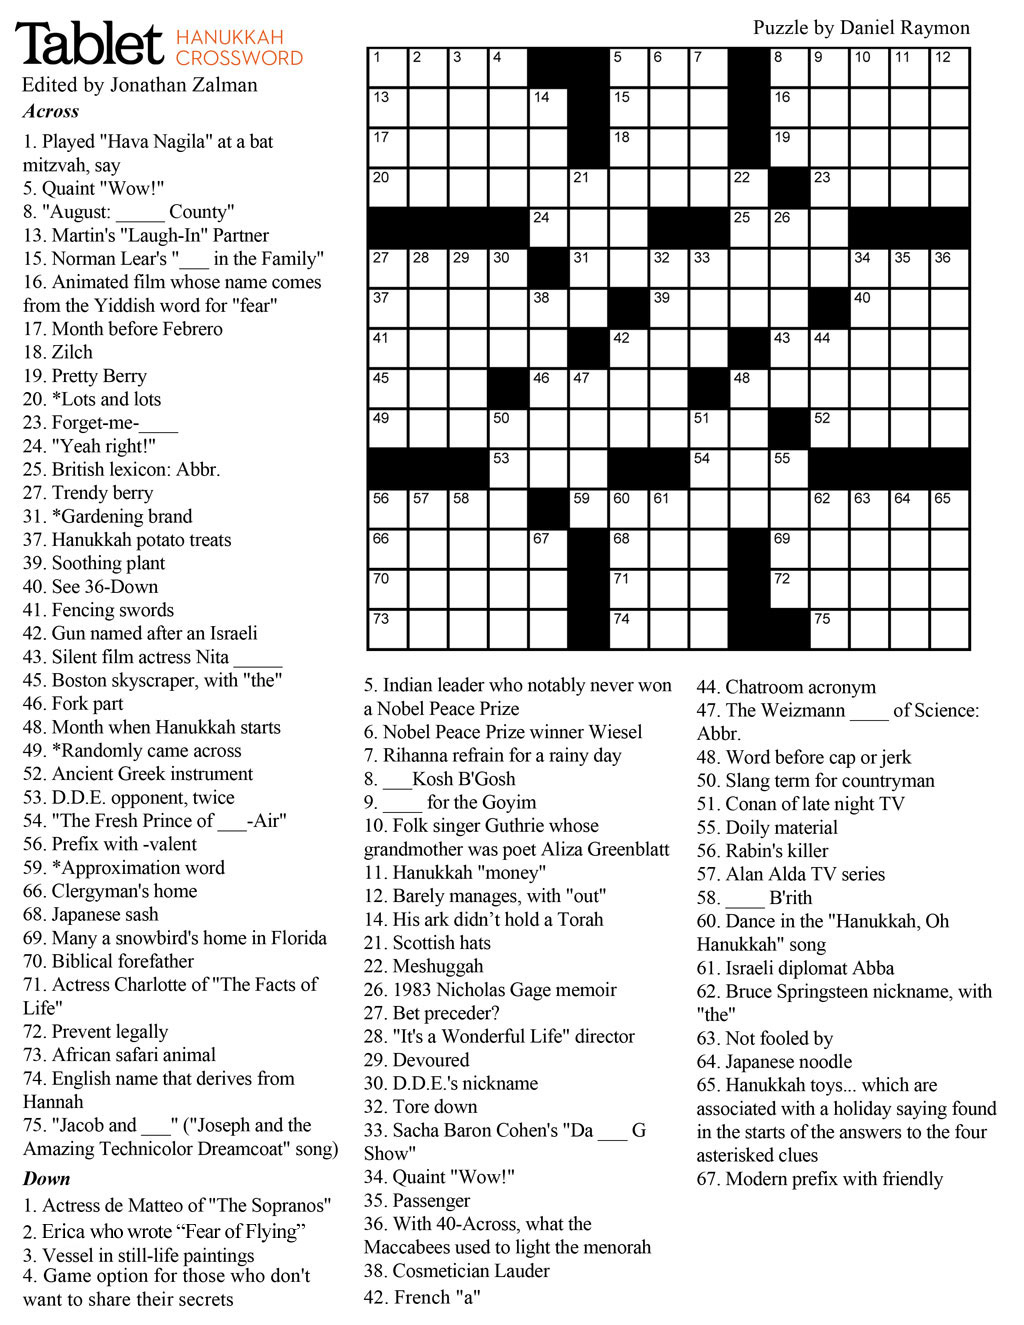 Wind Down With Our Hanukkah Crossword Puzzle! – Tablet Magazine - Printable Christmas Crossword Puzzle For Adults